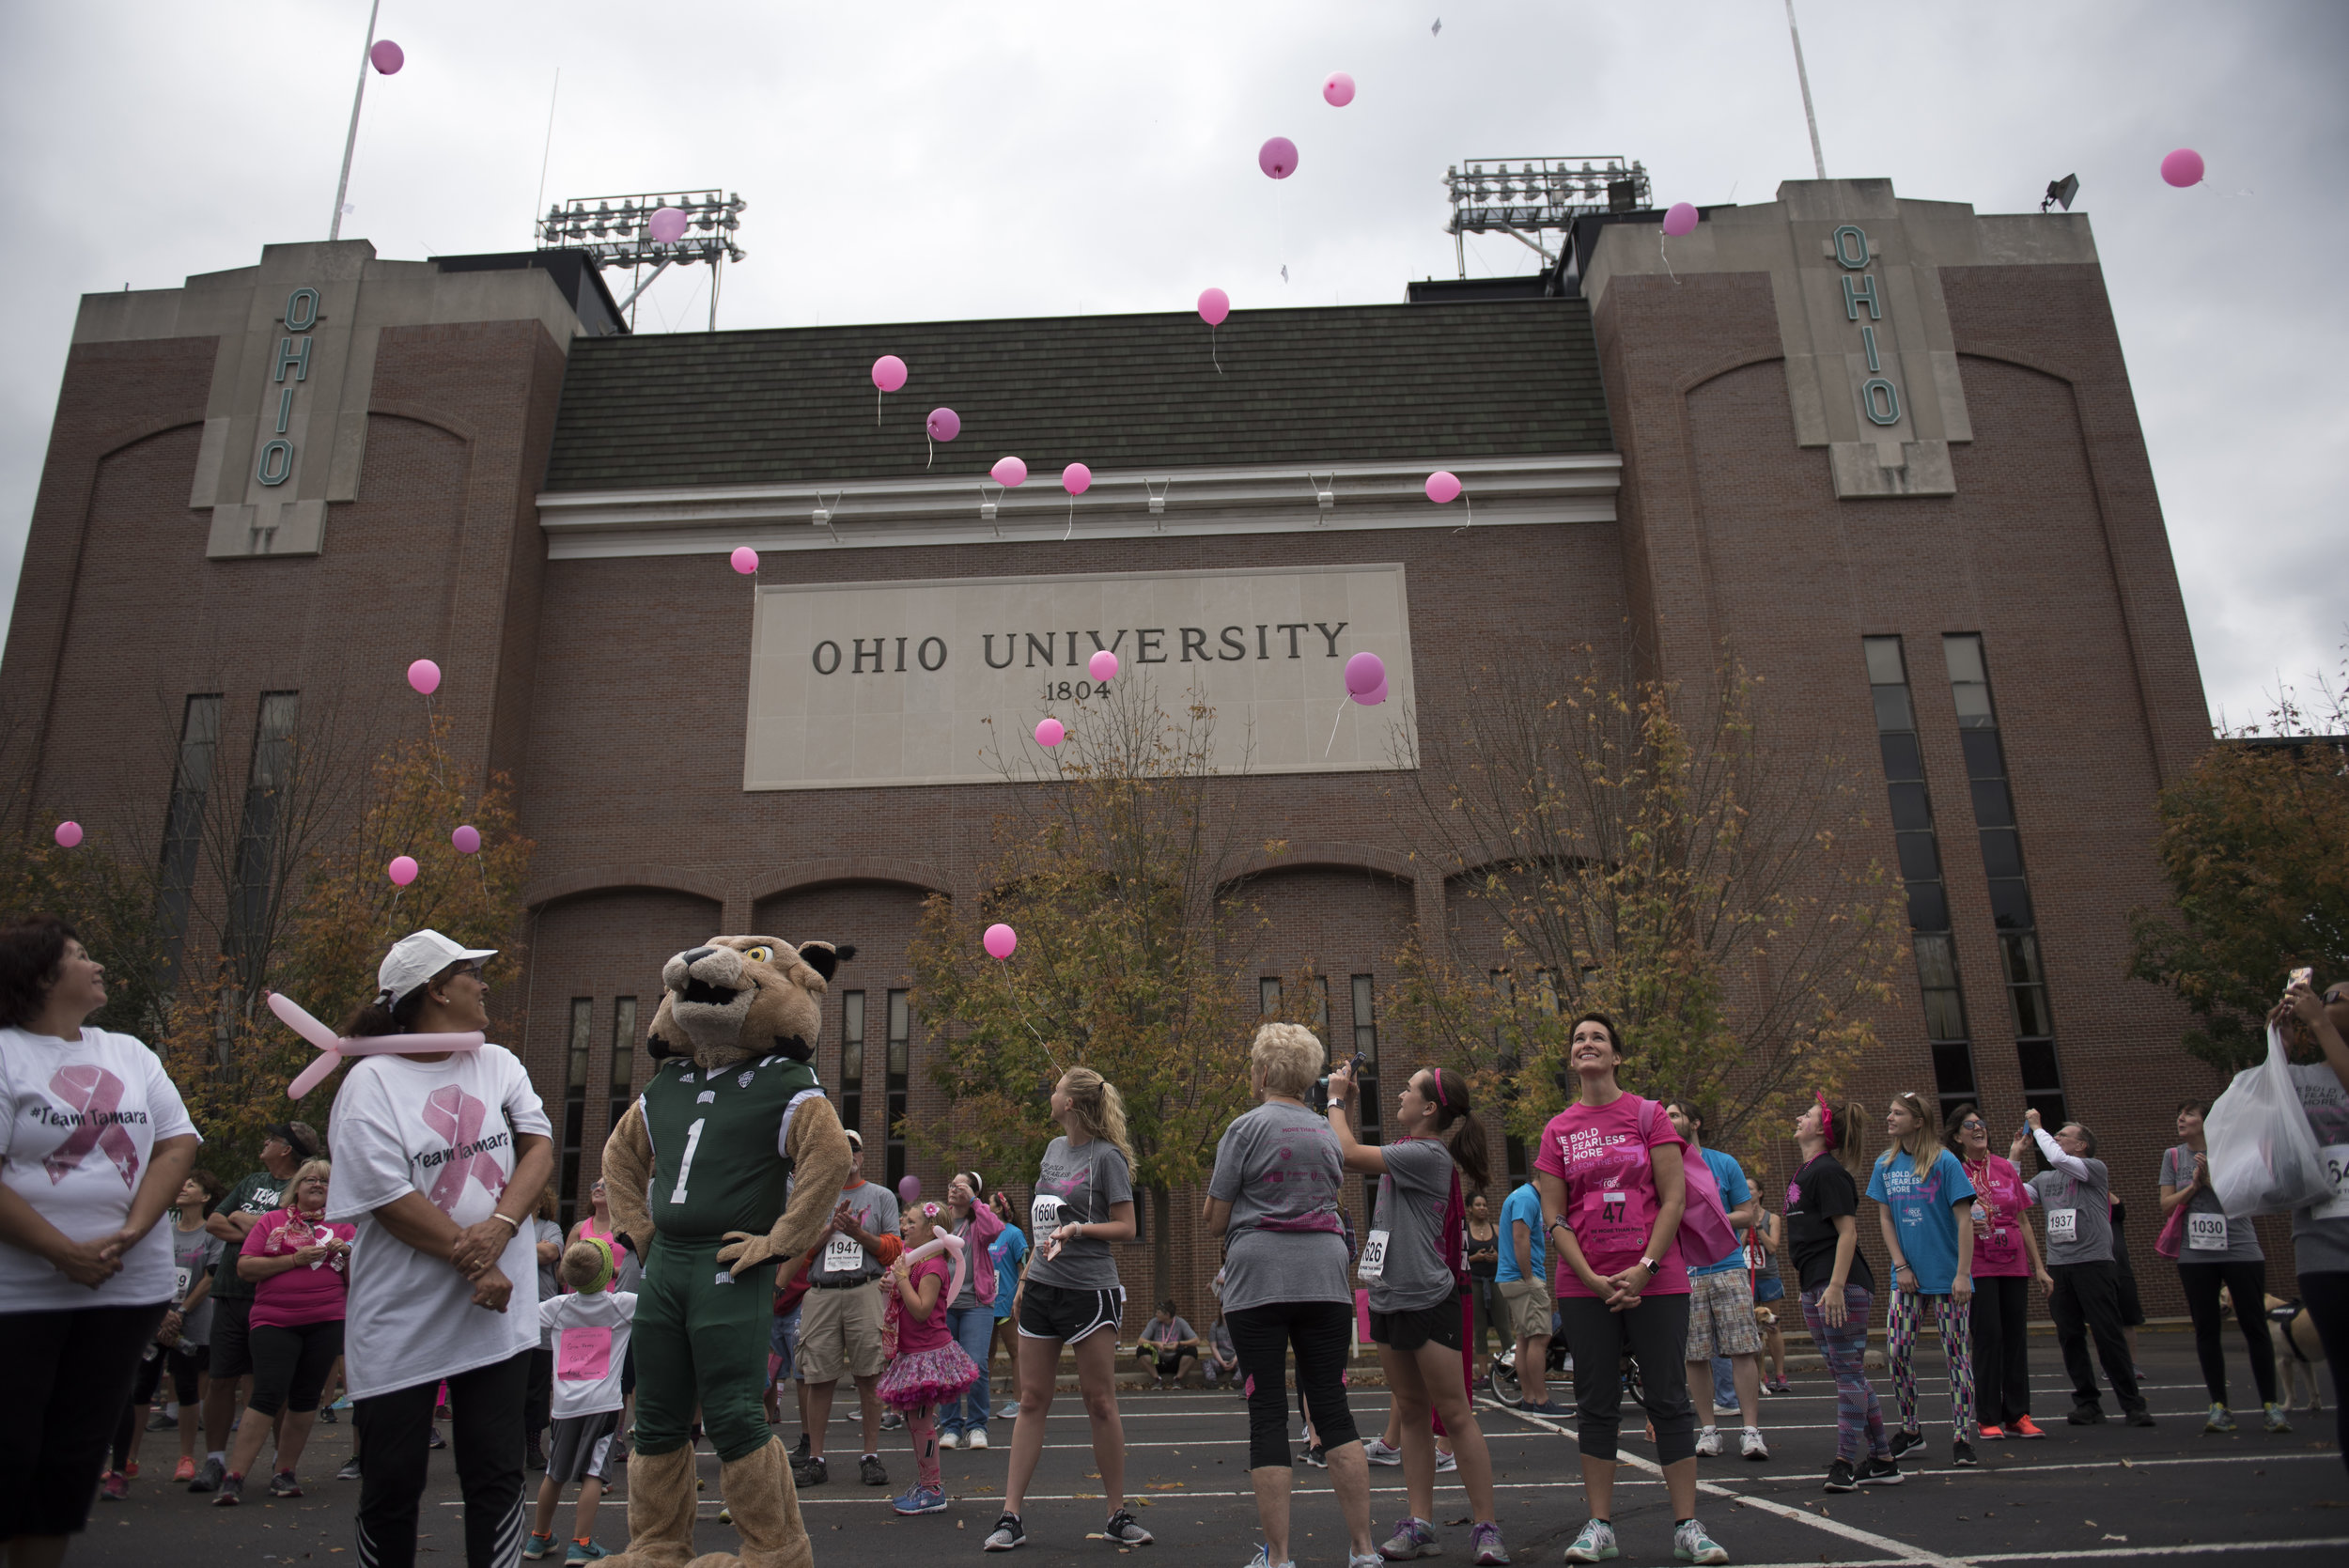 Runners watch pink balloons float up to the sky outside Peden Stadium before the start of the Race for the Cure on Oct. 15, 2017 in Athens, Ohio.